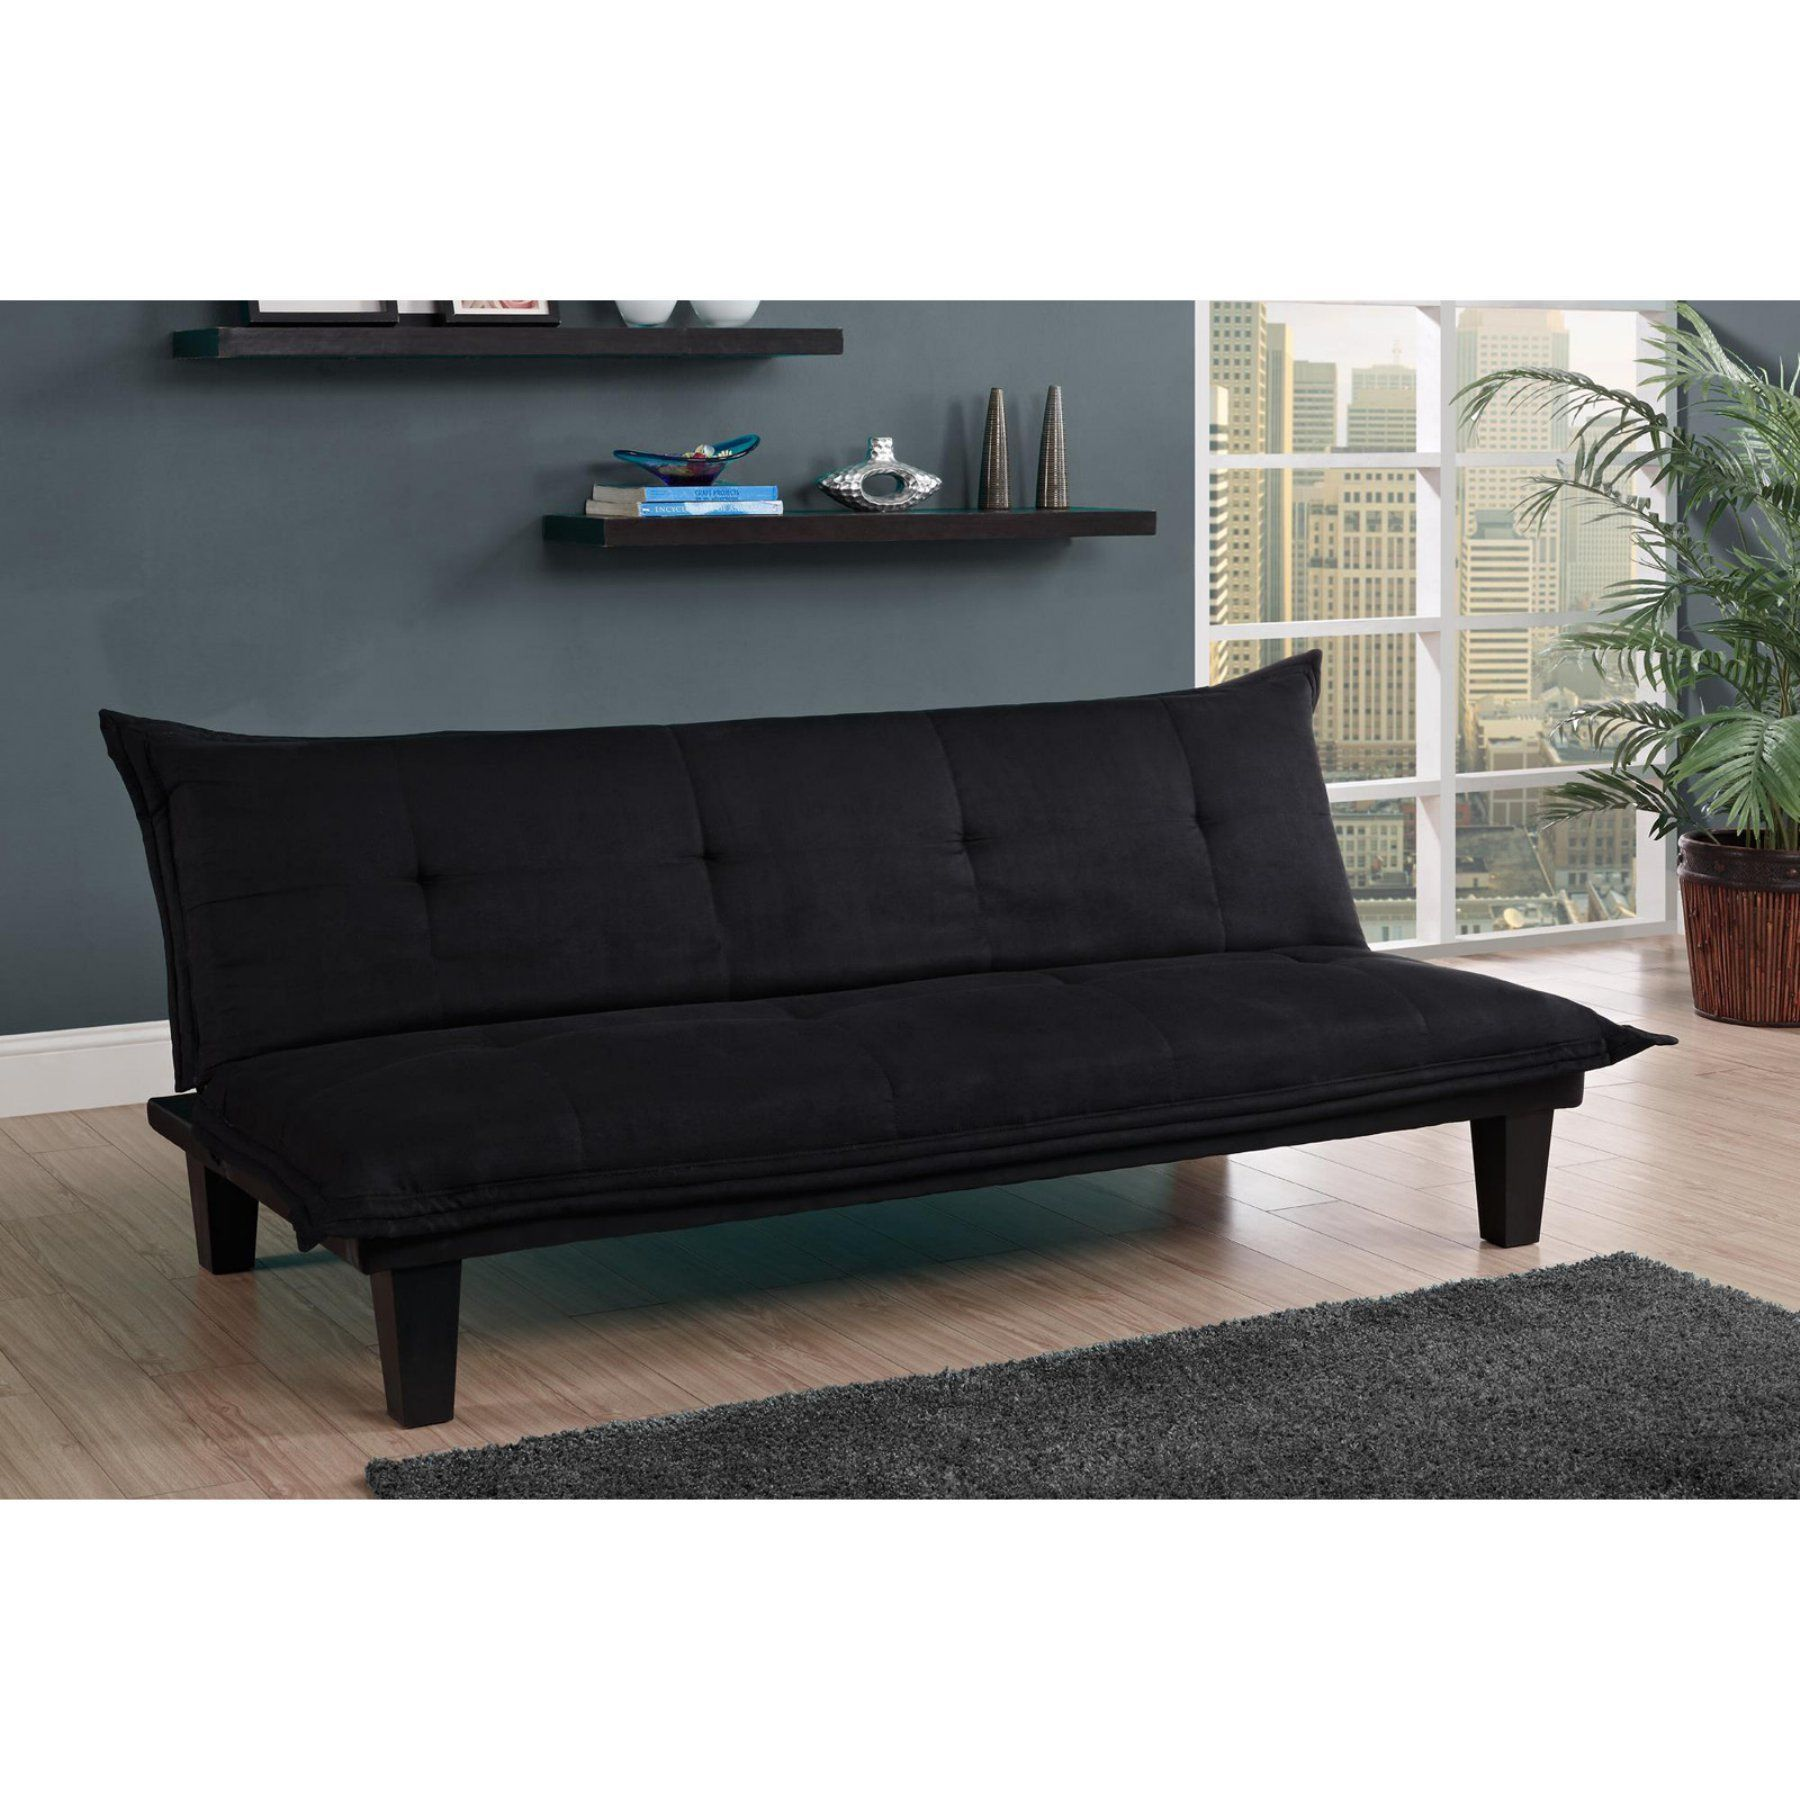 Dhp Lodge Futon Charcoal 2038419 Products